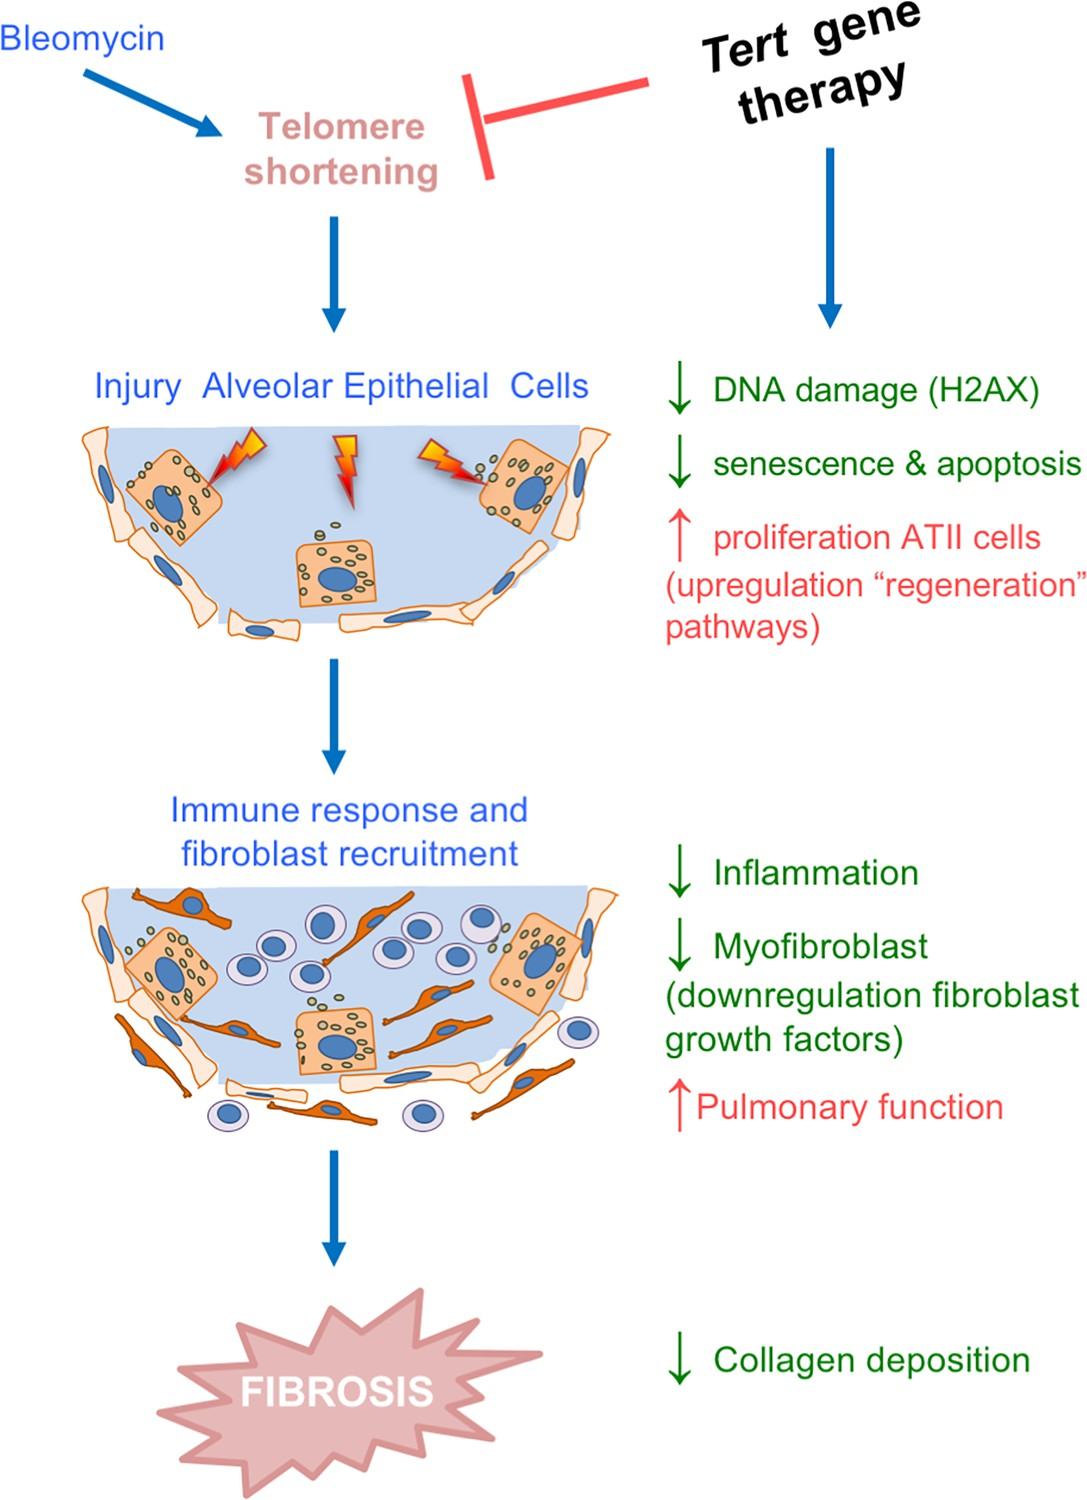 Therapeutic effects of telomerase in mice with pulmonary fibrosis